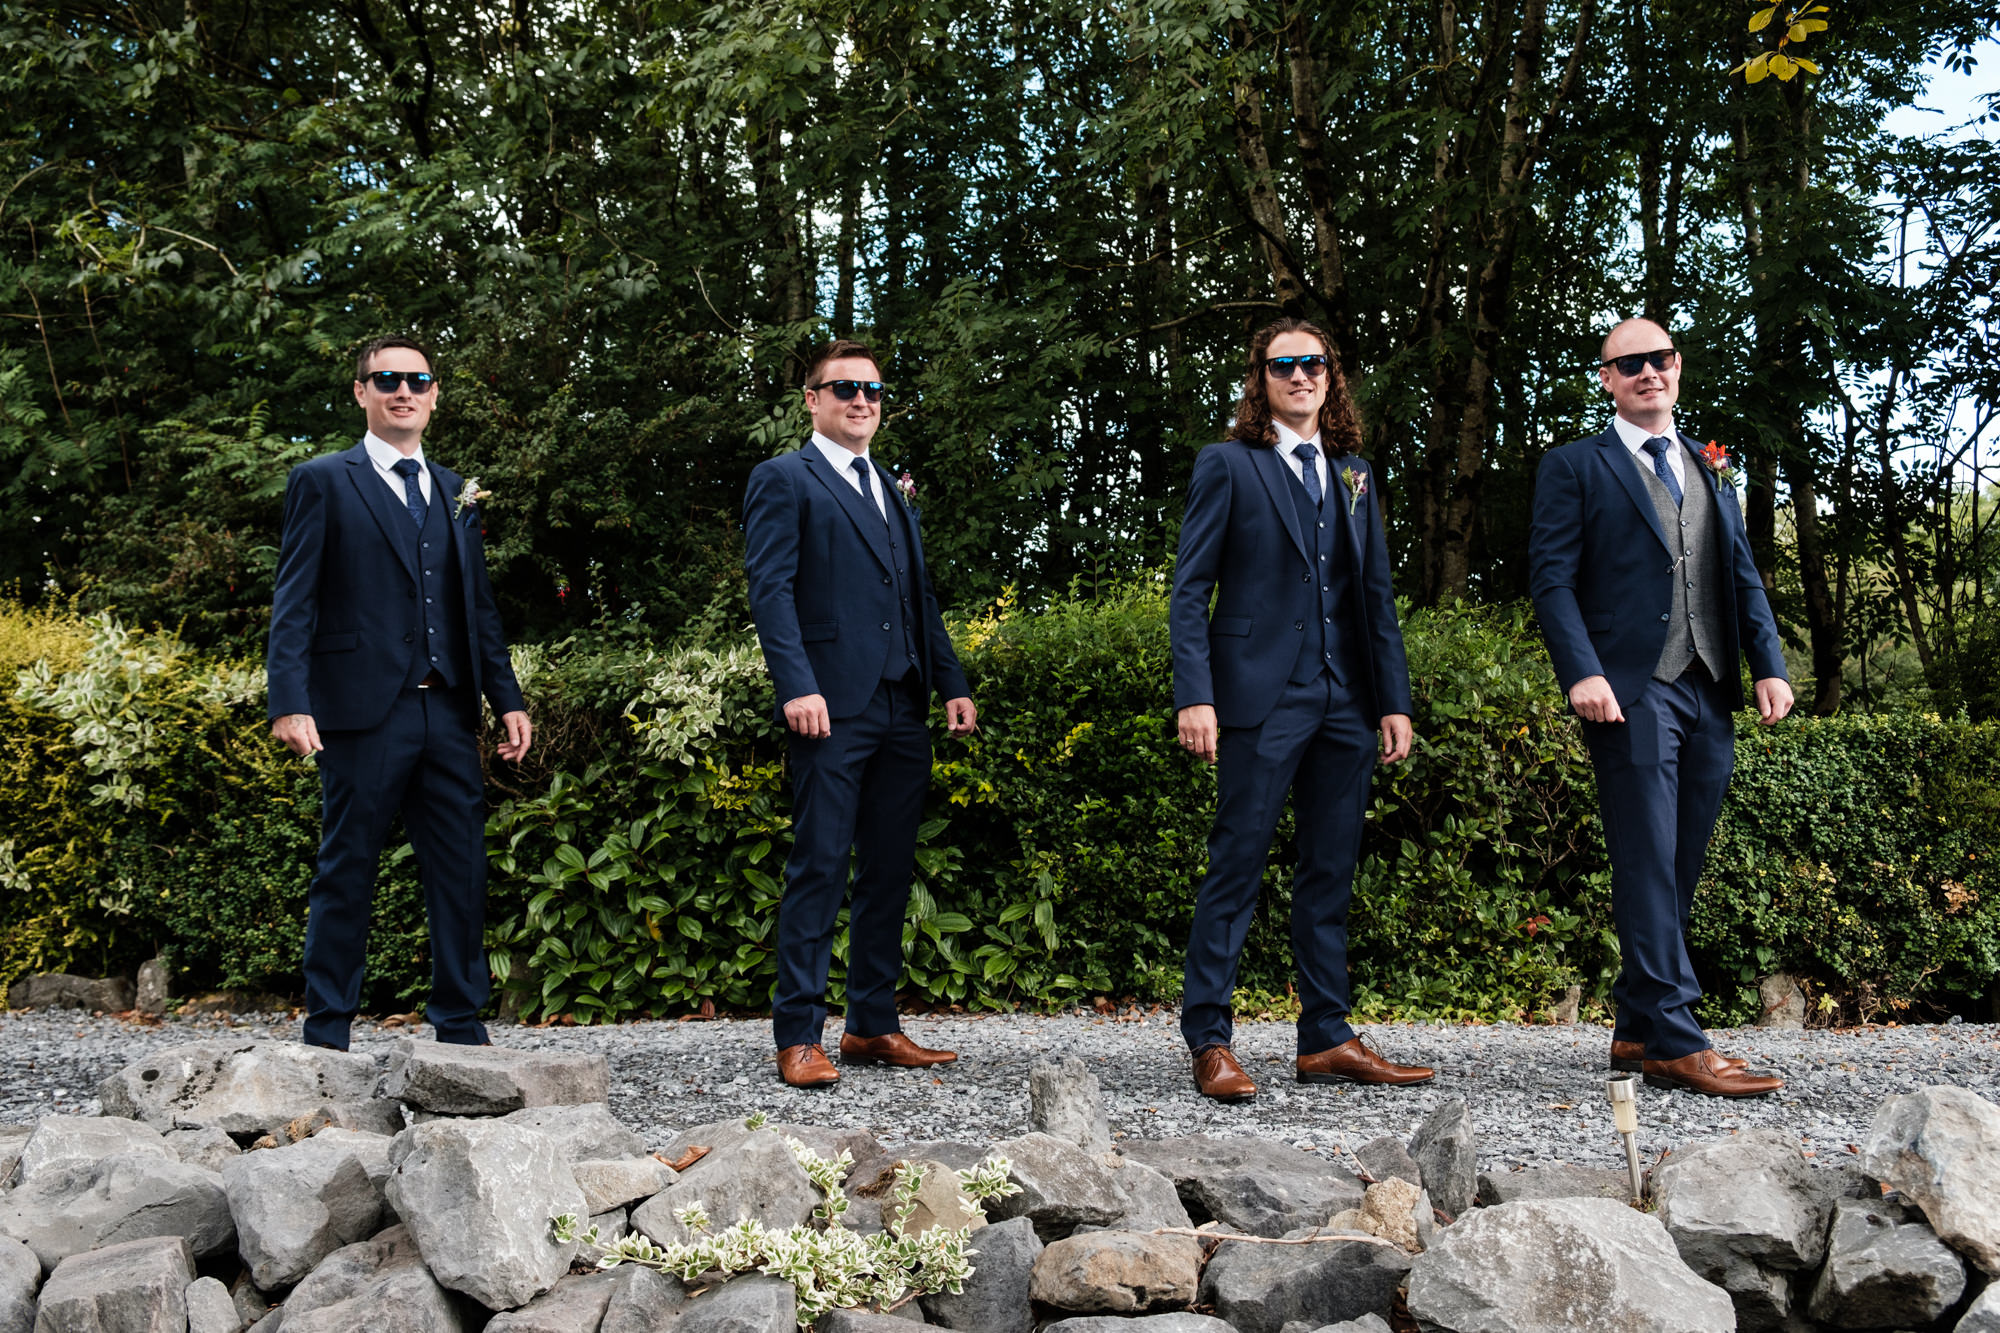 groom and groomsmen in shades